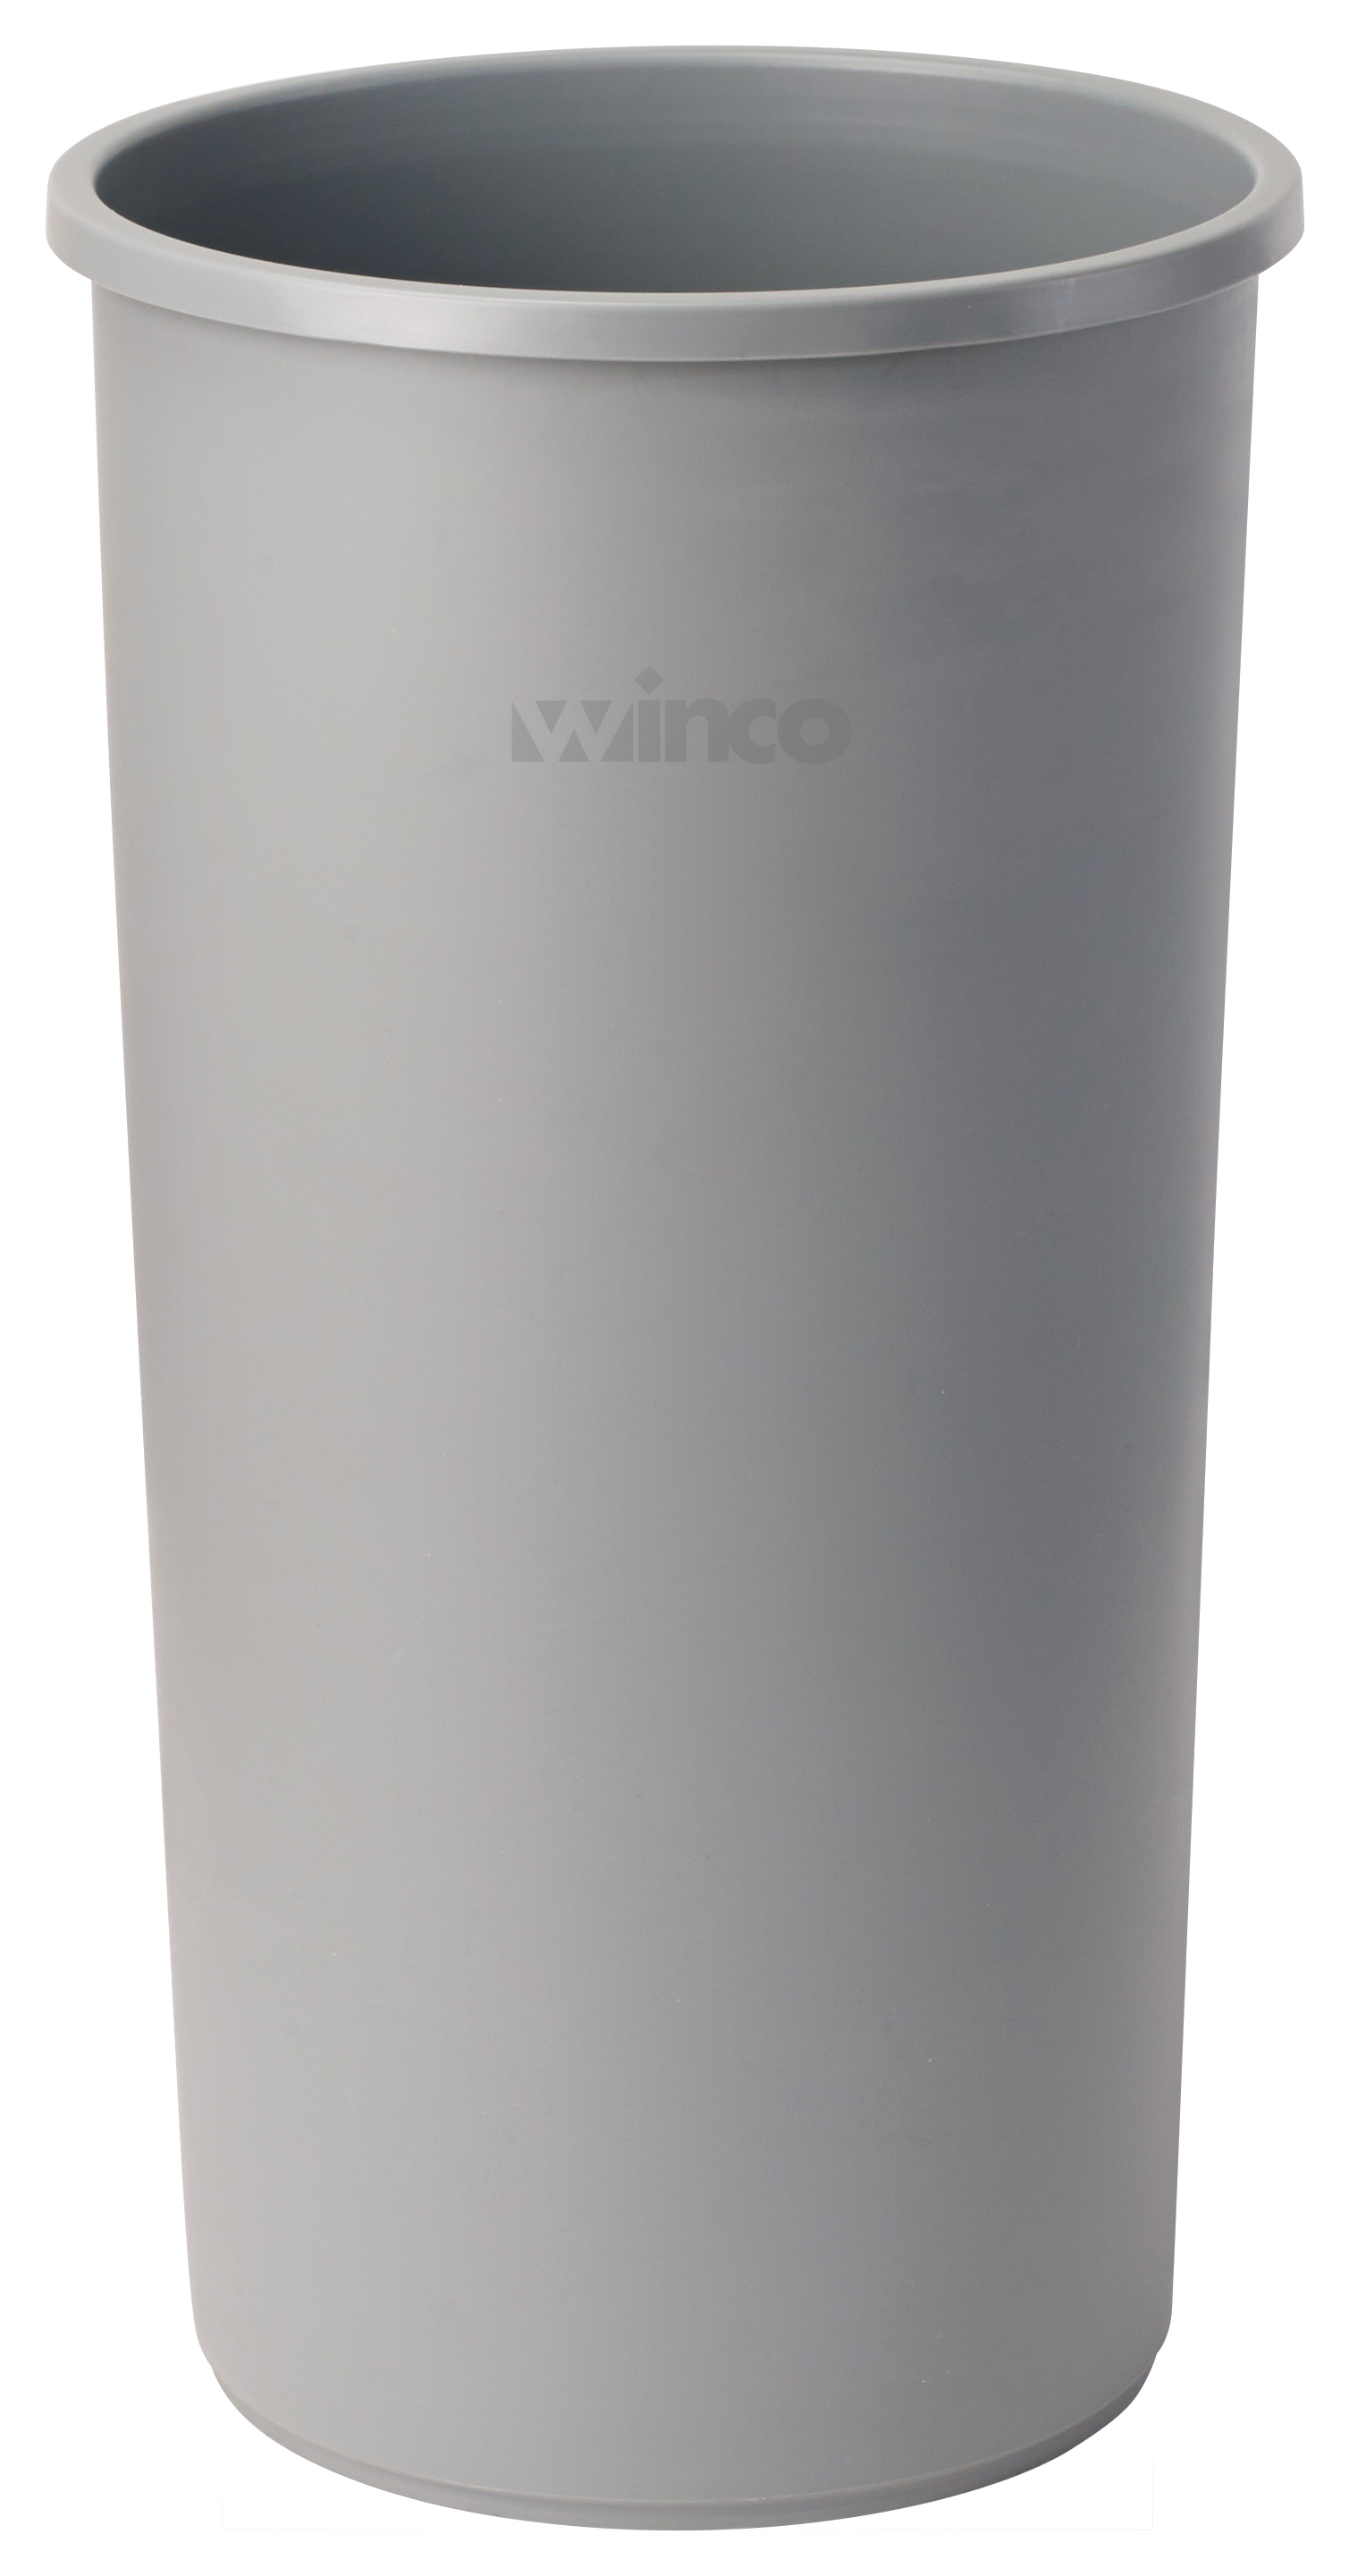 Winco PTCR-22G round tall trash can